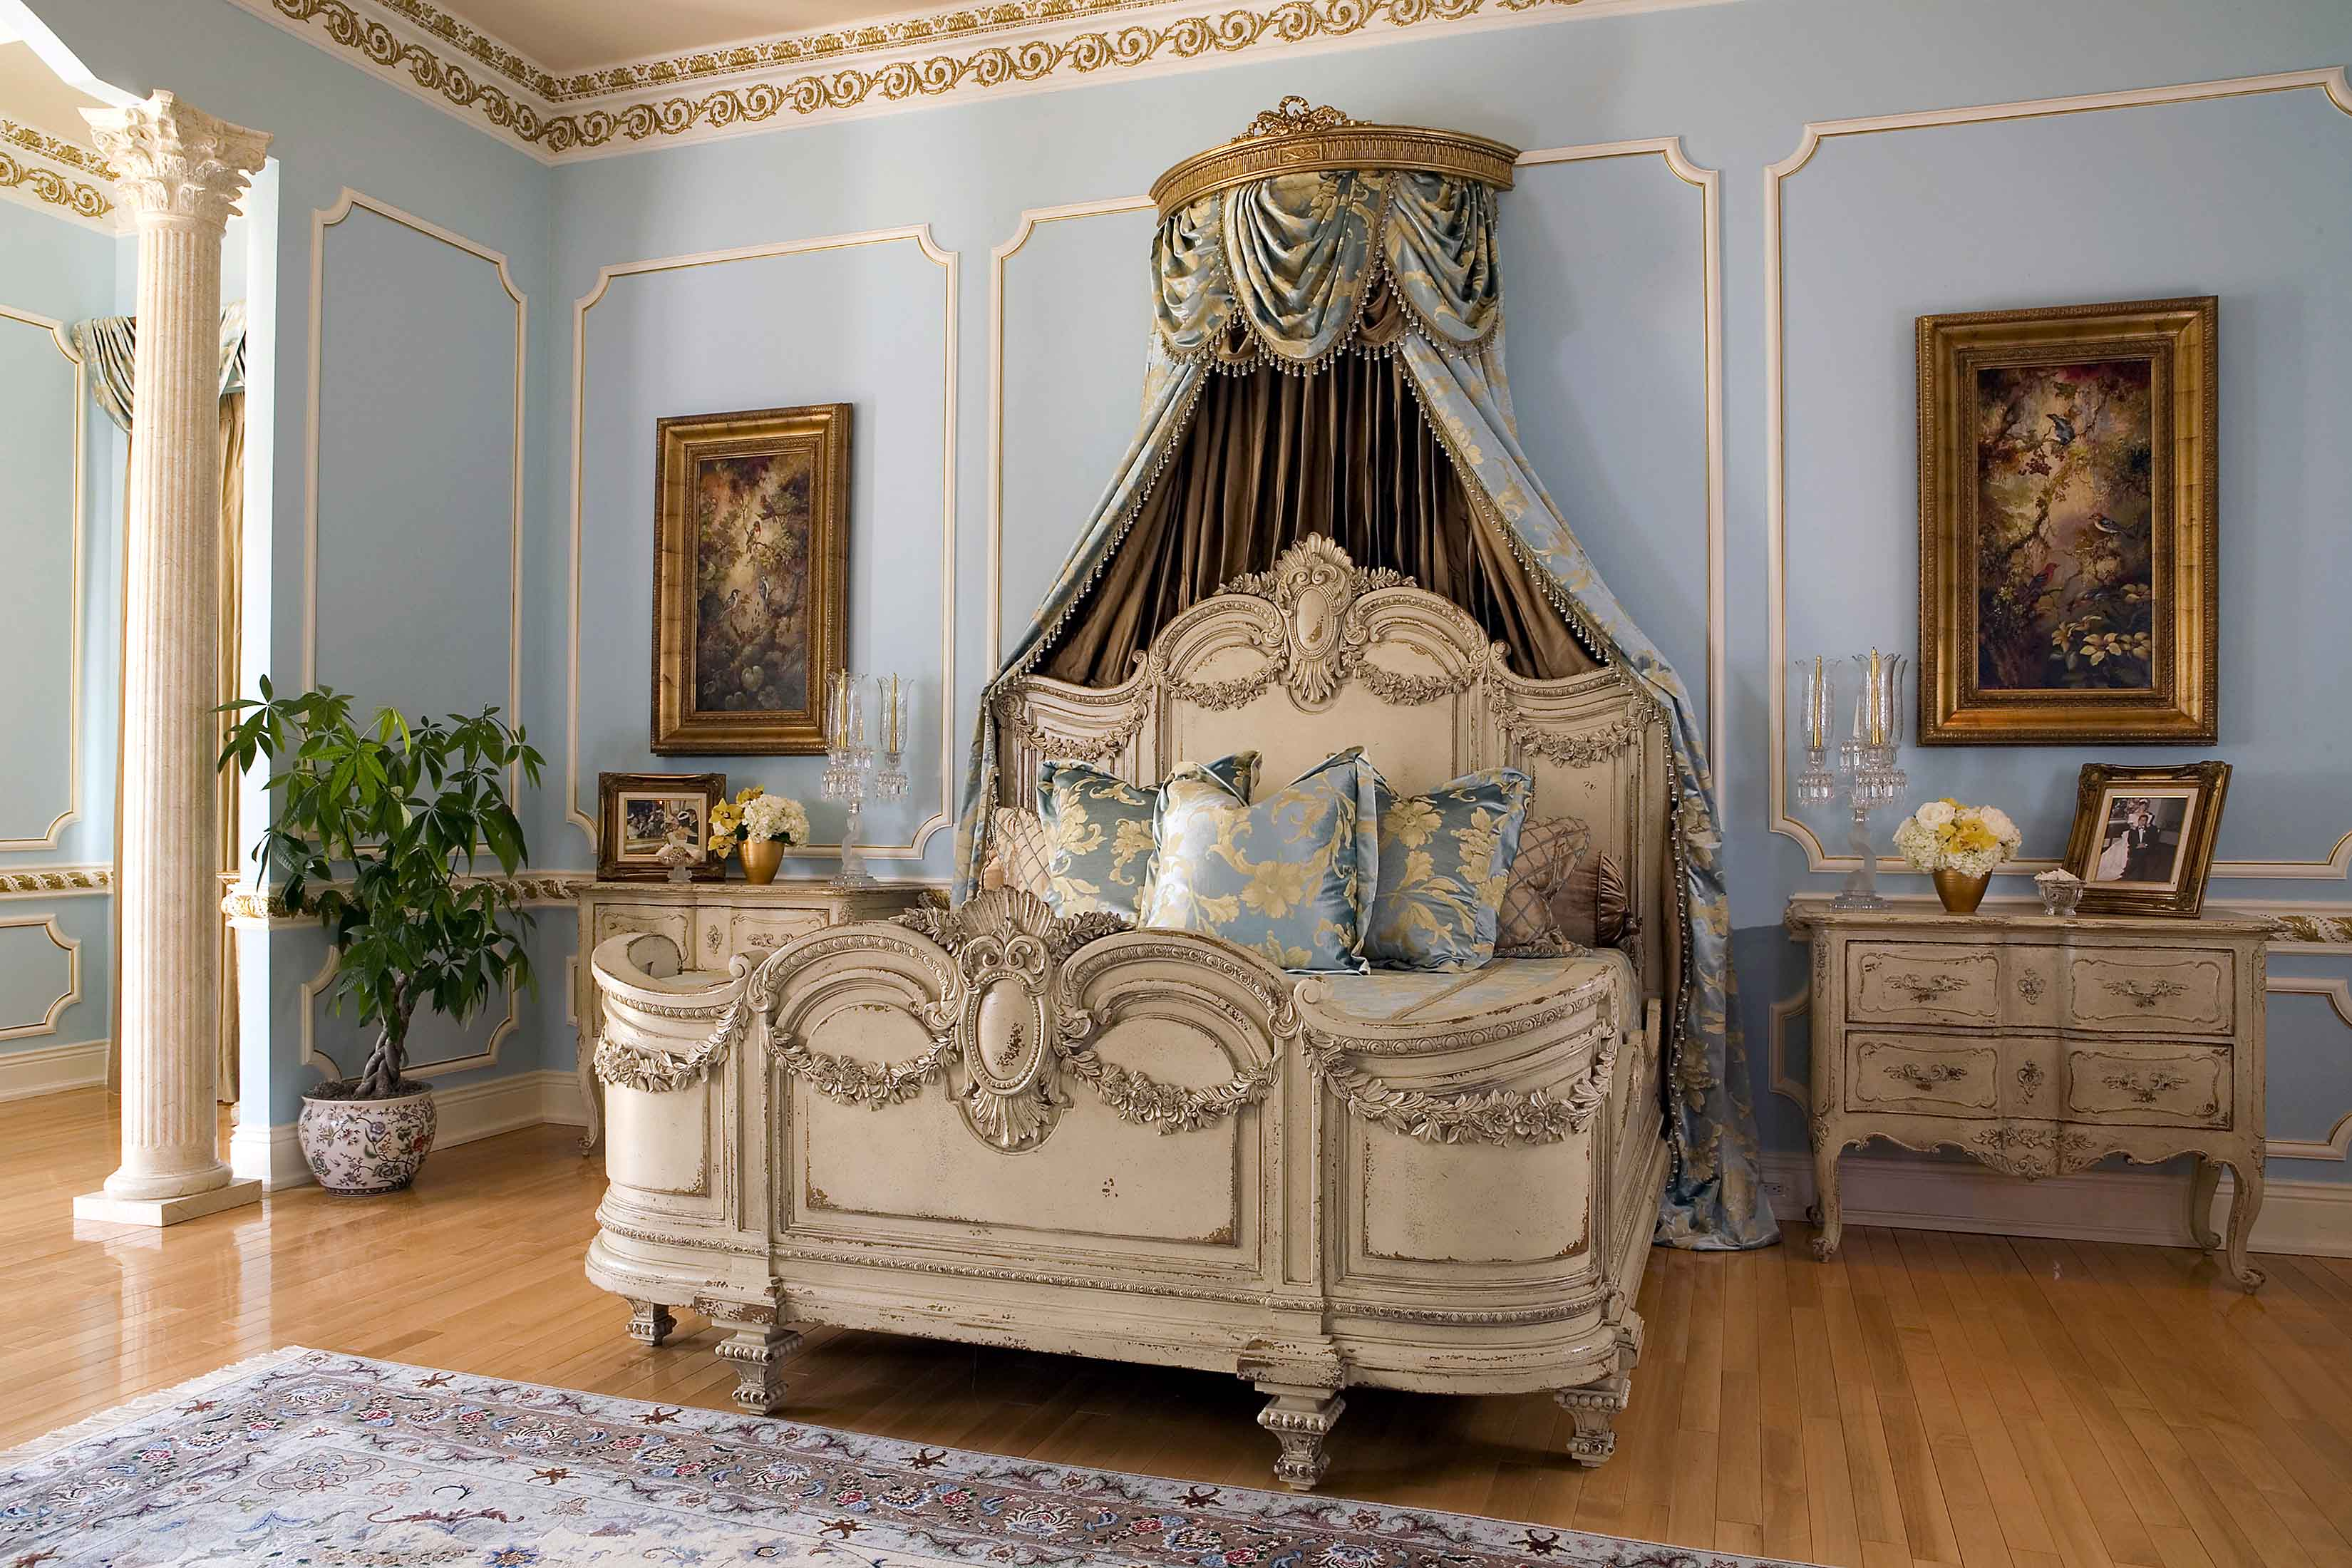 Master bedroom with blue walls, gold crown molding and antique bedroom furniture